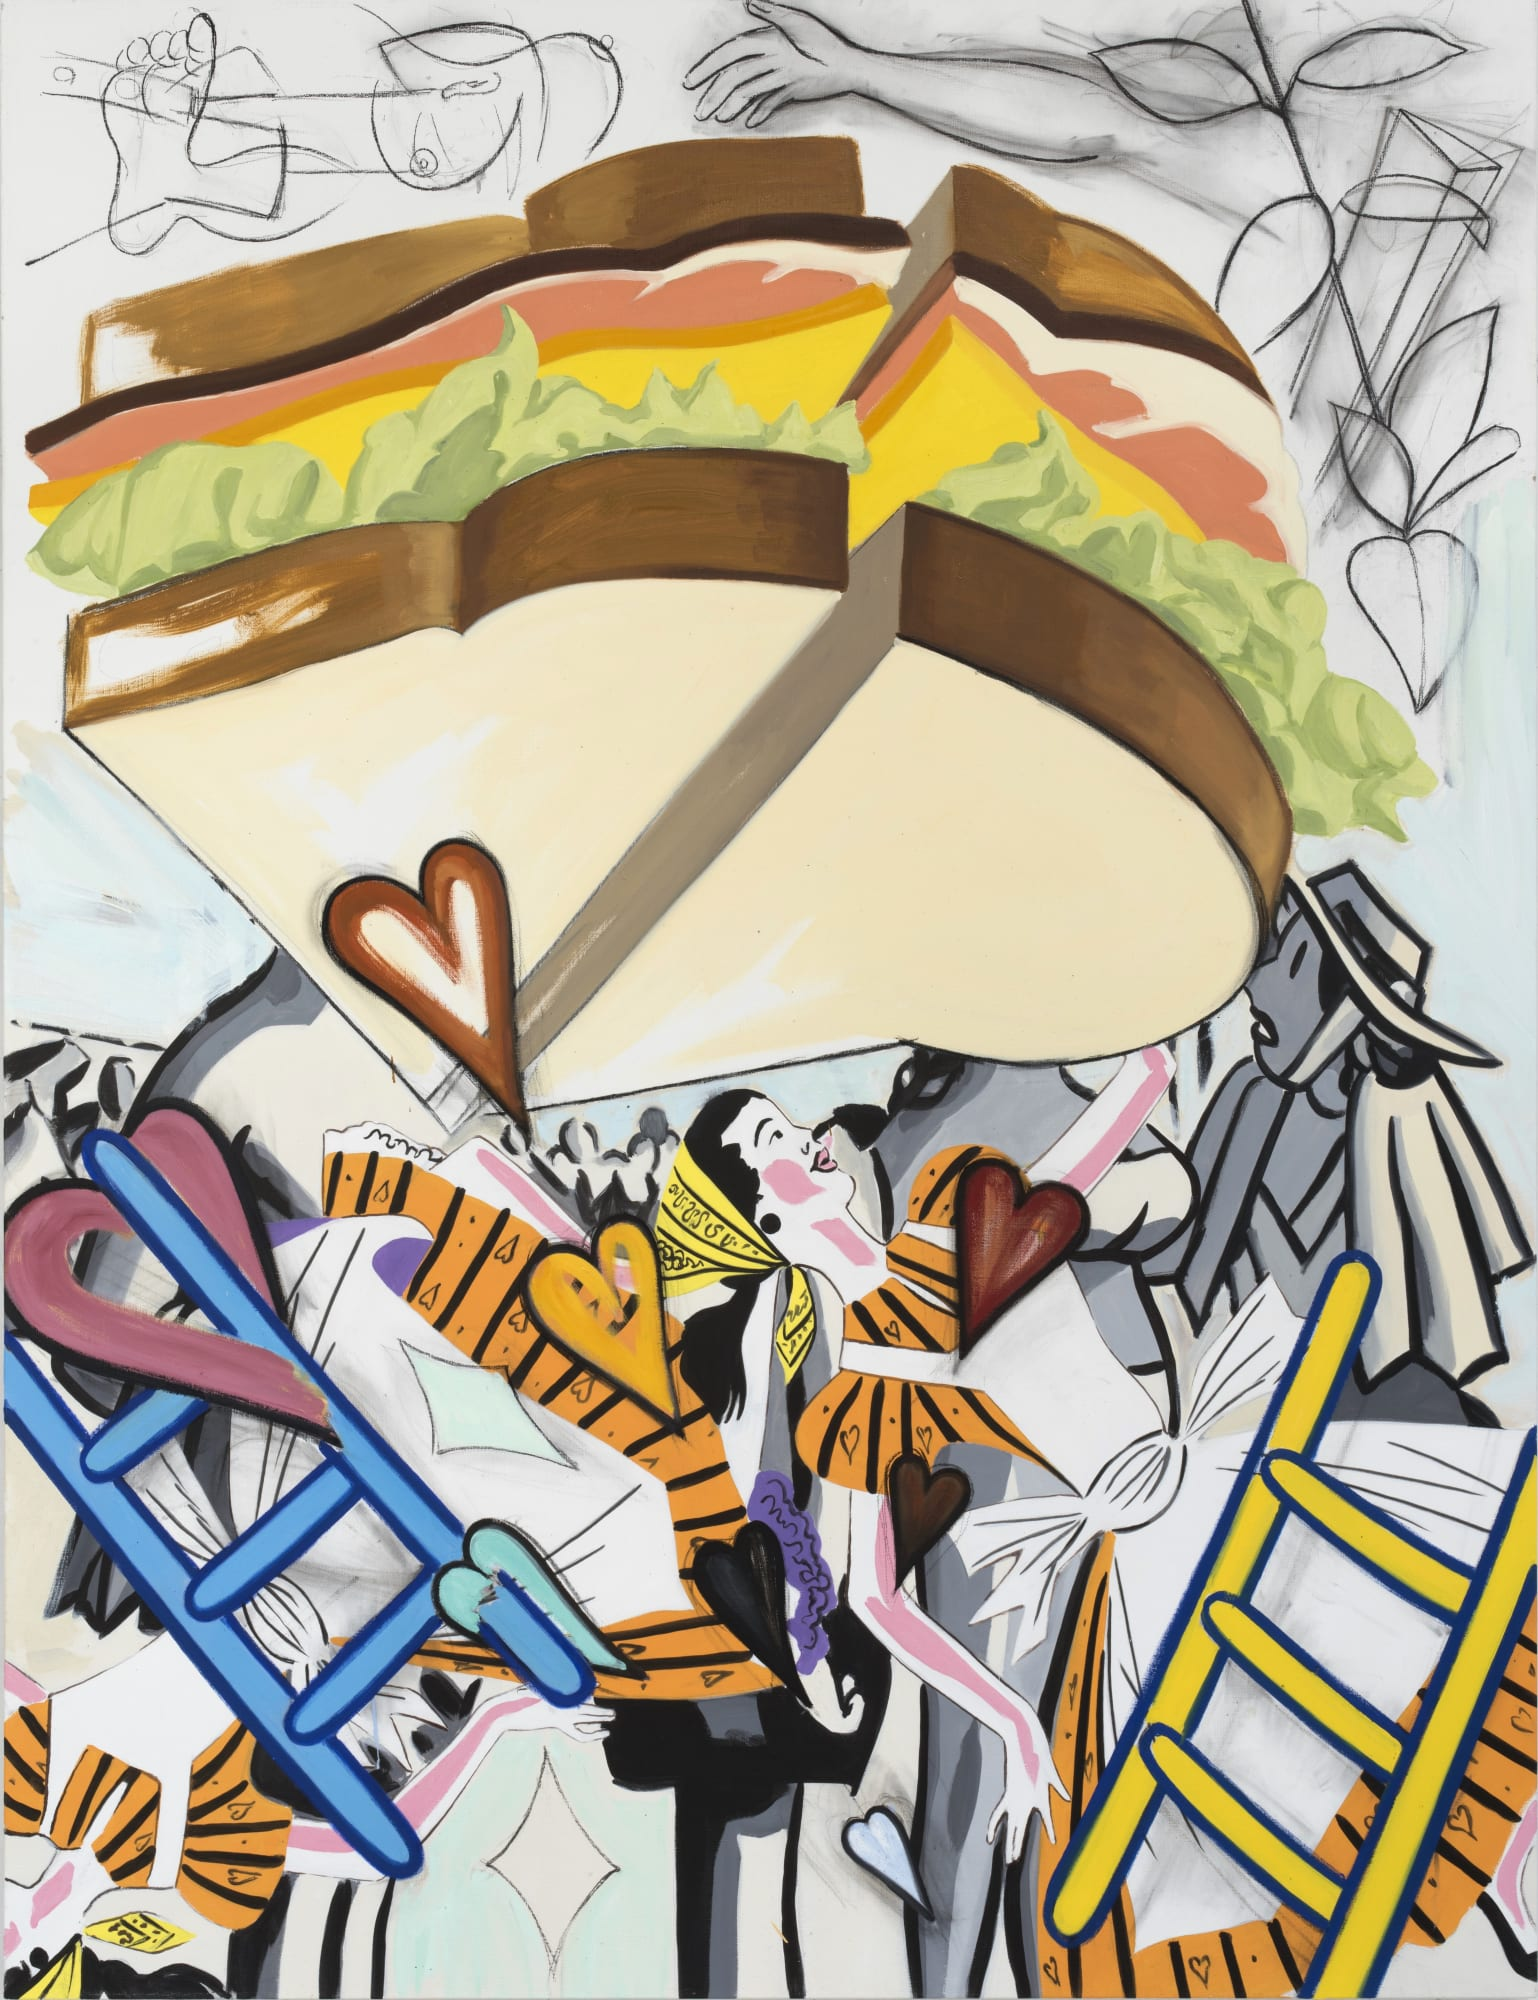 David Salle, Flying, Rainbow, Sandwich (2019); Self-Ironing Pants & Other Paintings at Thaddaeus Ropac Paris Marais 2020